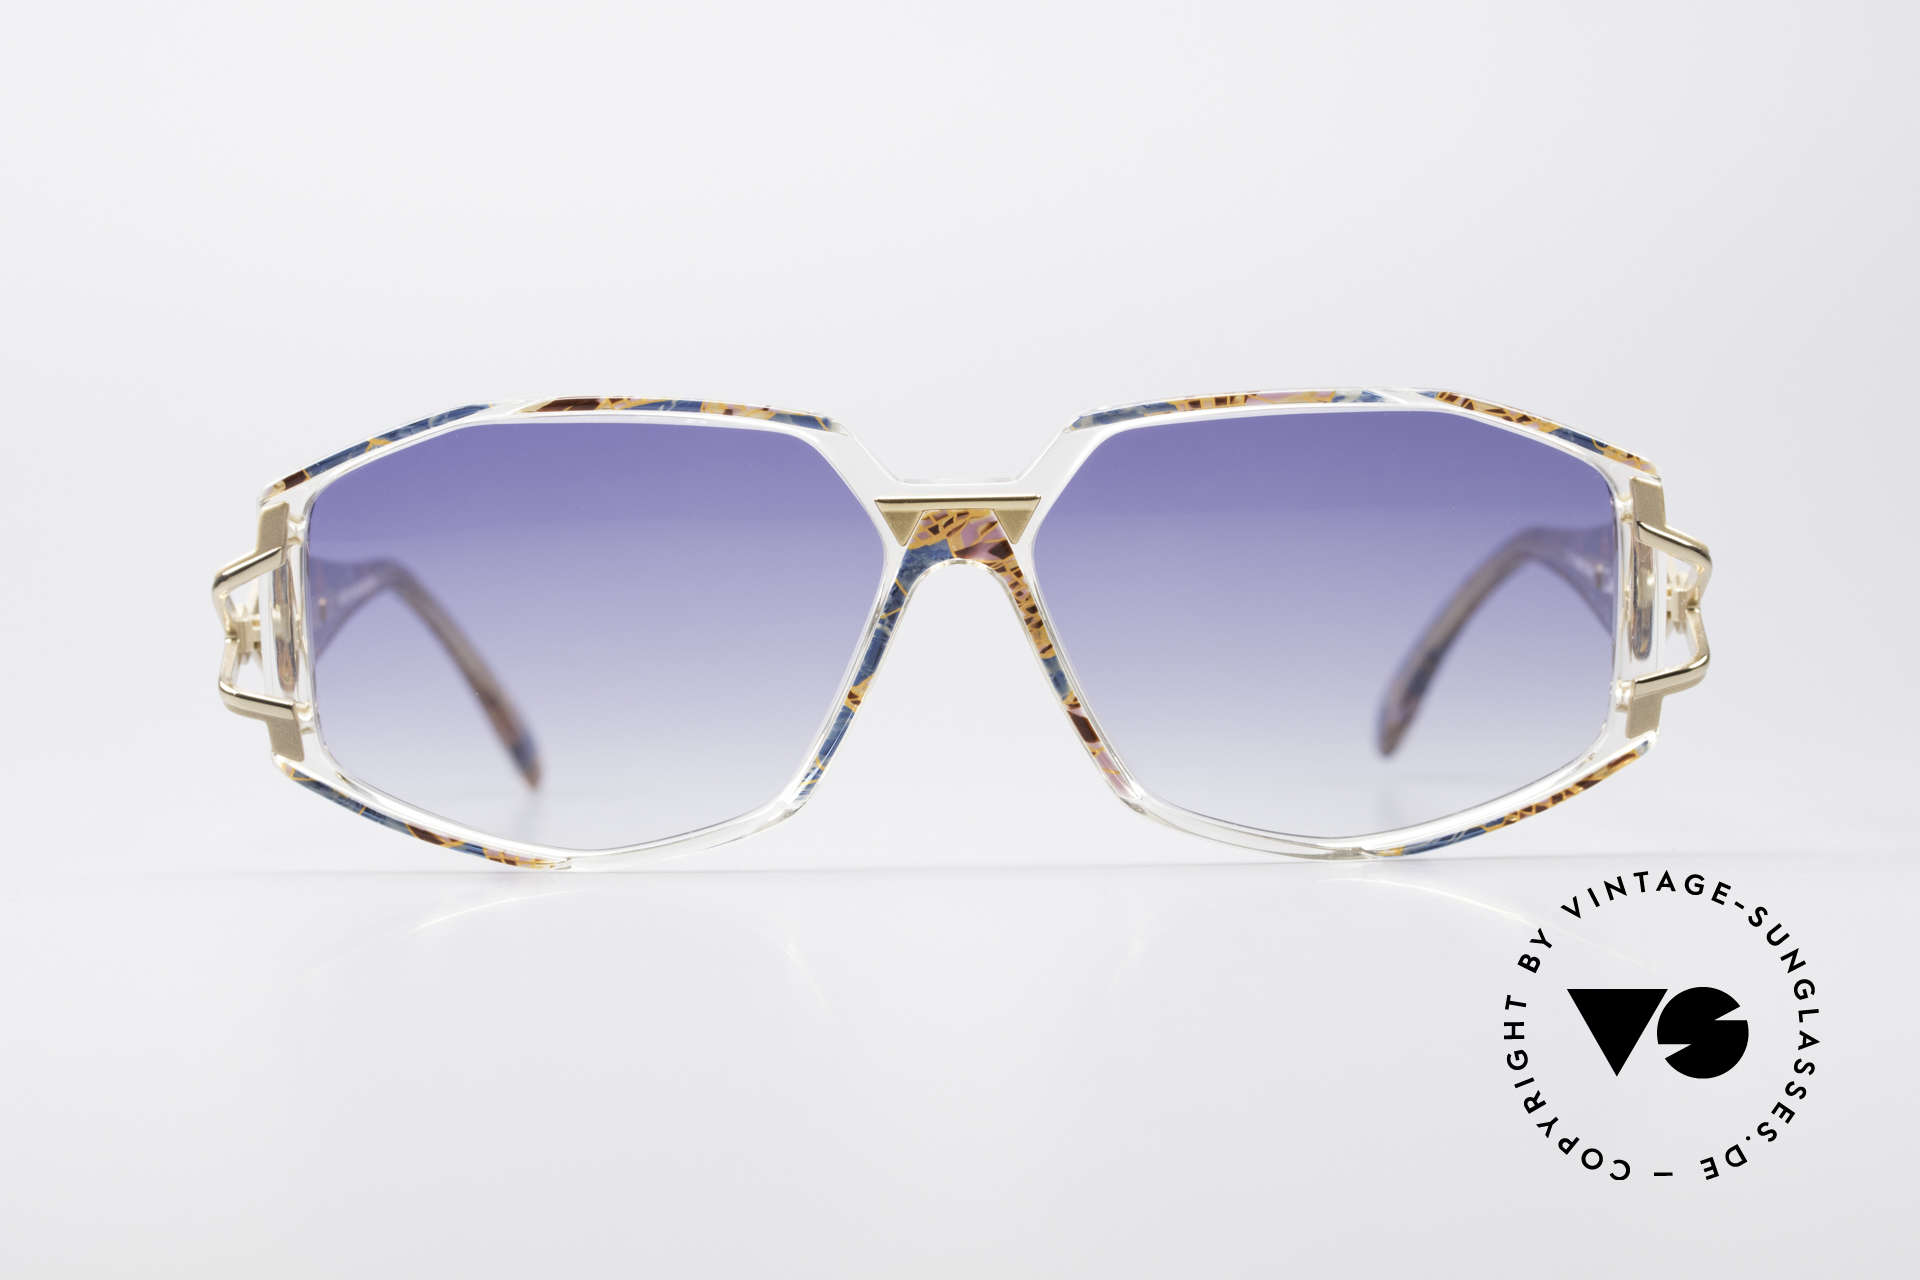 Cazal 368 90's Hip Hop Old School Shades, exciting design on the hinges of the arms; just unique, Made for Women